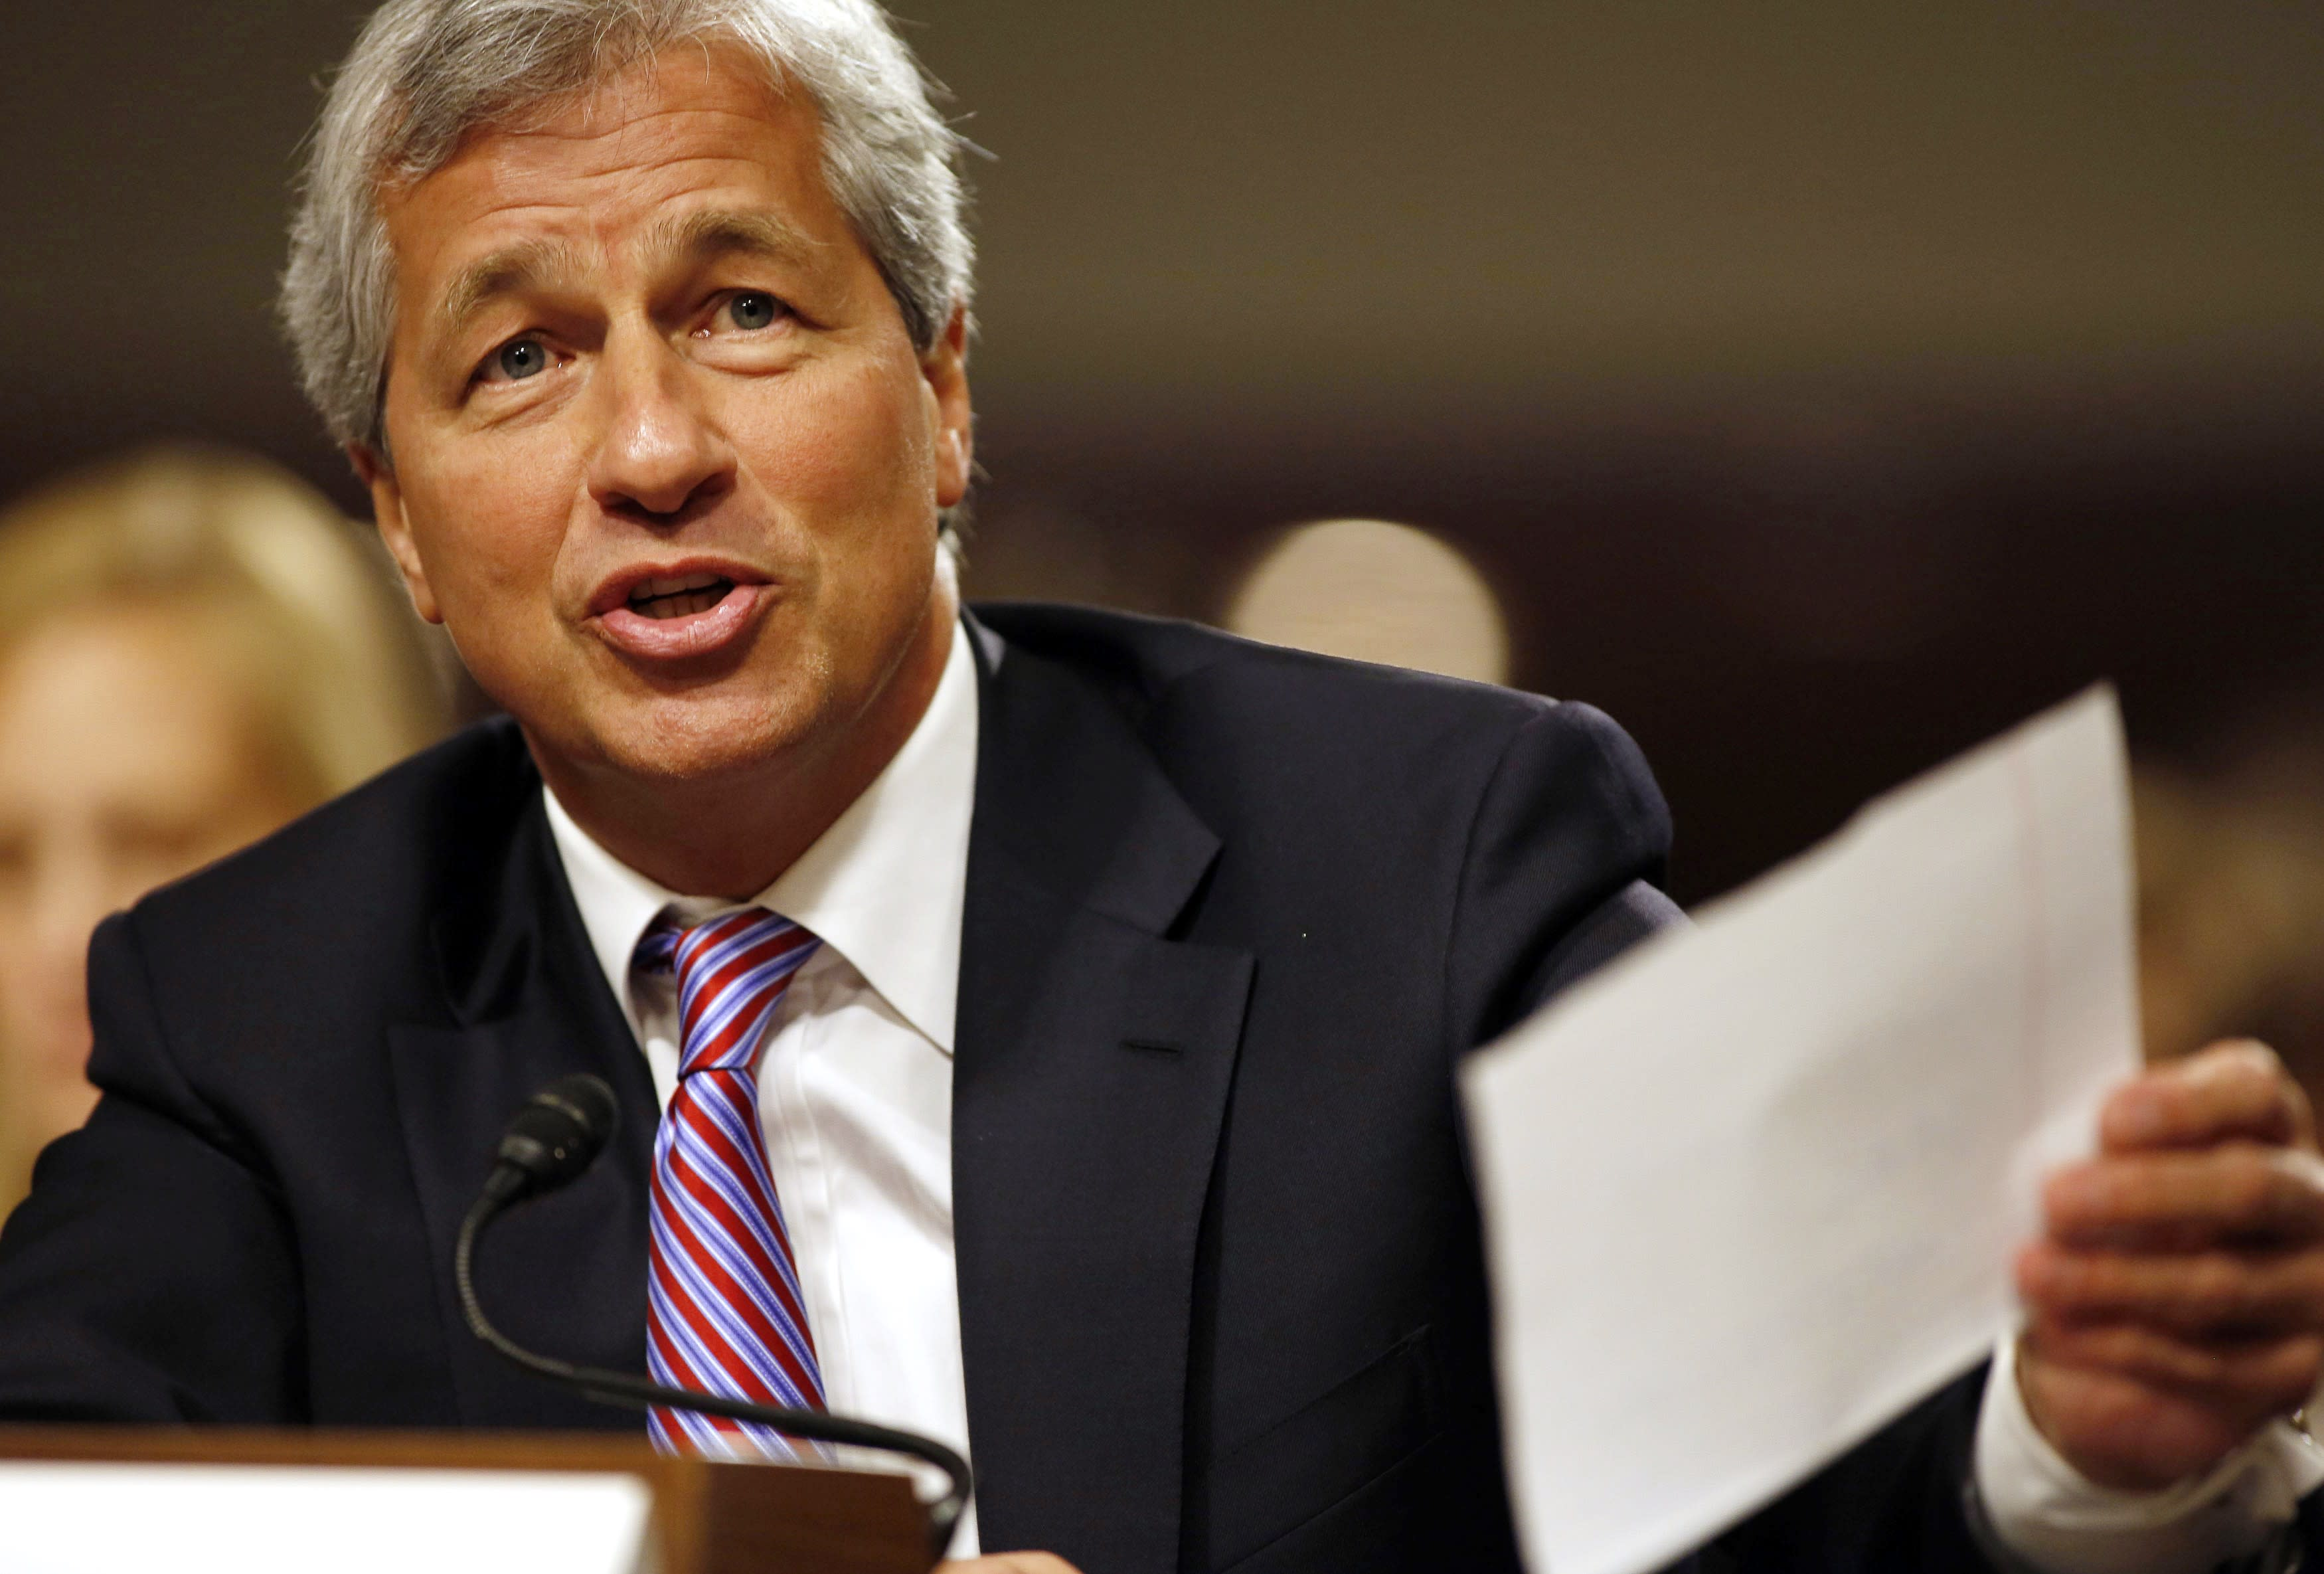 JPMorgan CEO Jamie Dimon talks China, trade and immigration in his annual letter